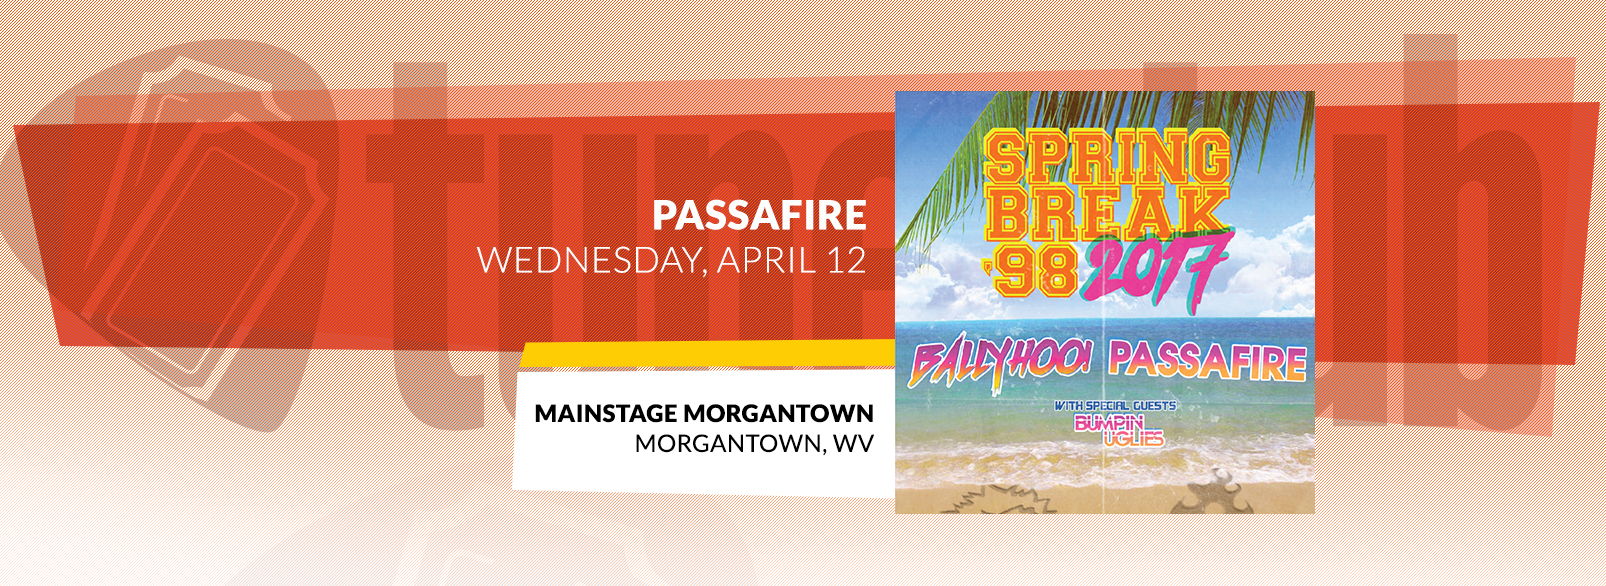 Passafire @ Mainstage Morgantown